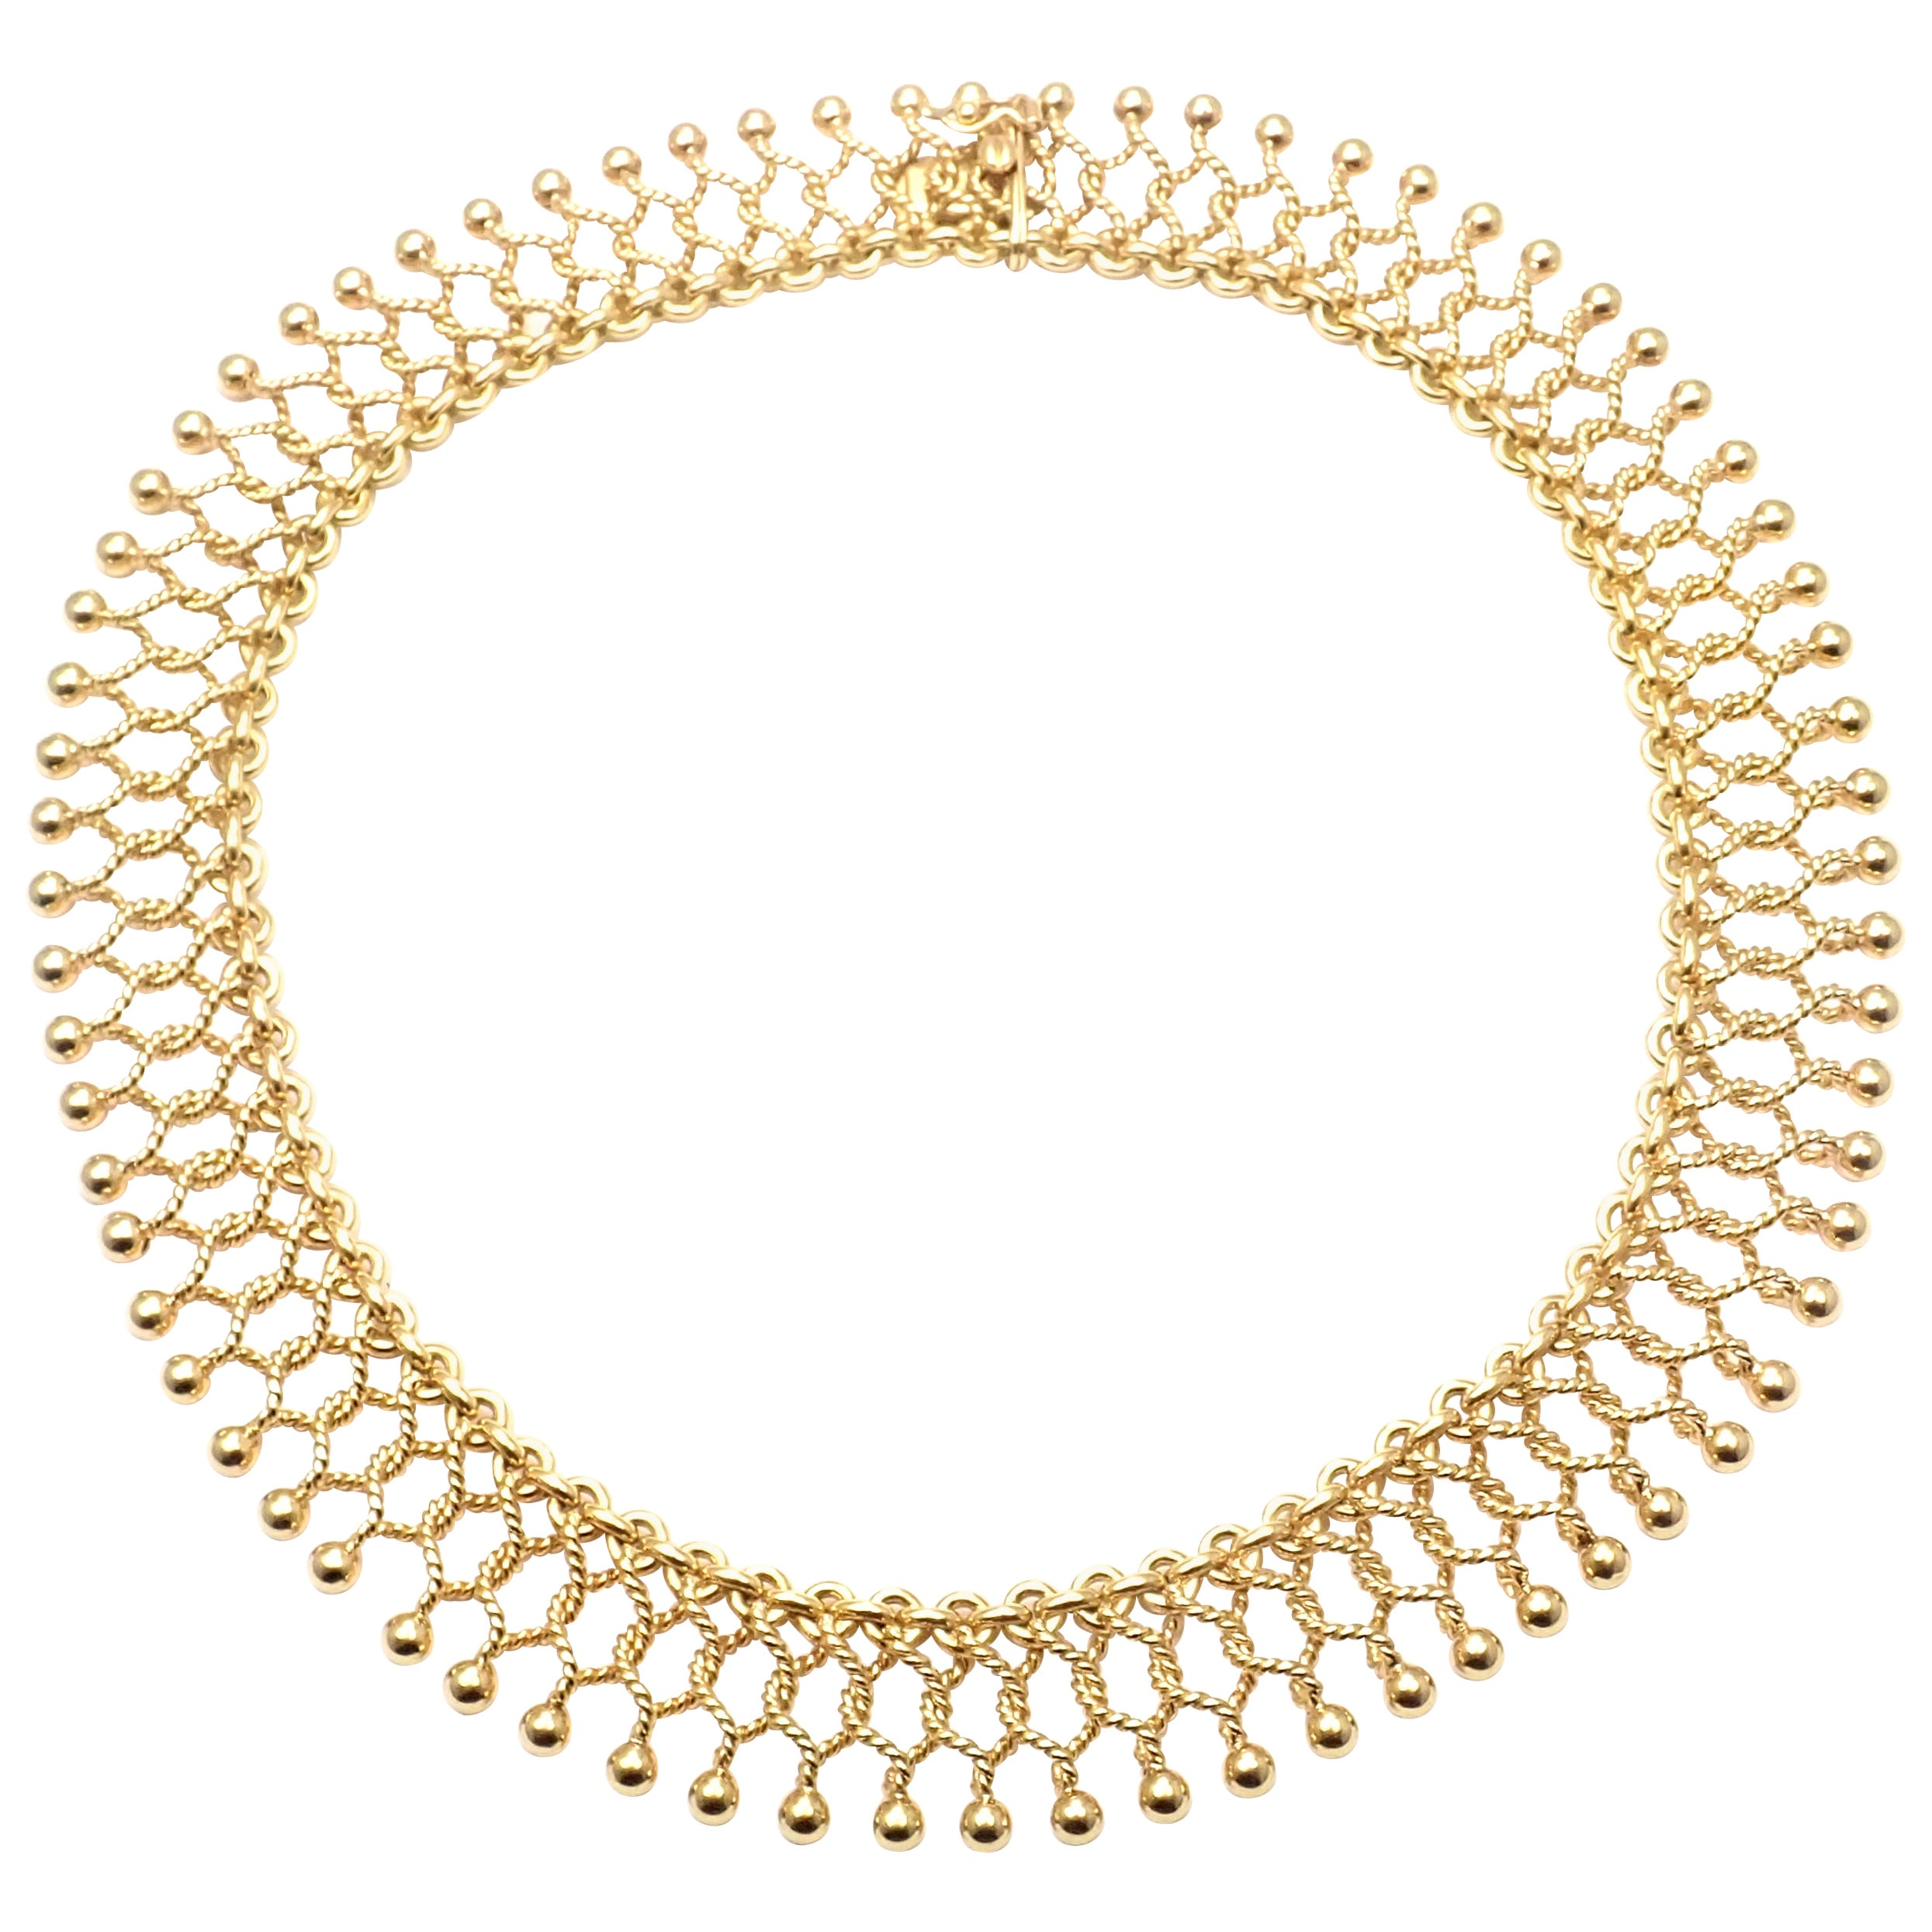 Vintage Tiffany & Co. Cleopatra Collar Yellow Gold Link Necklace